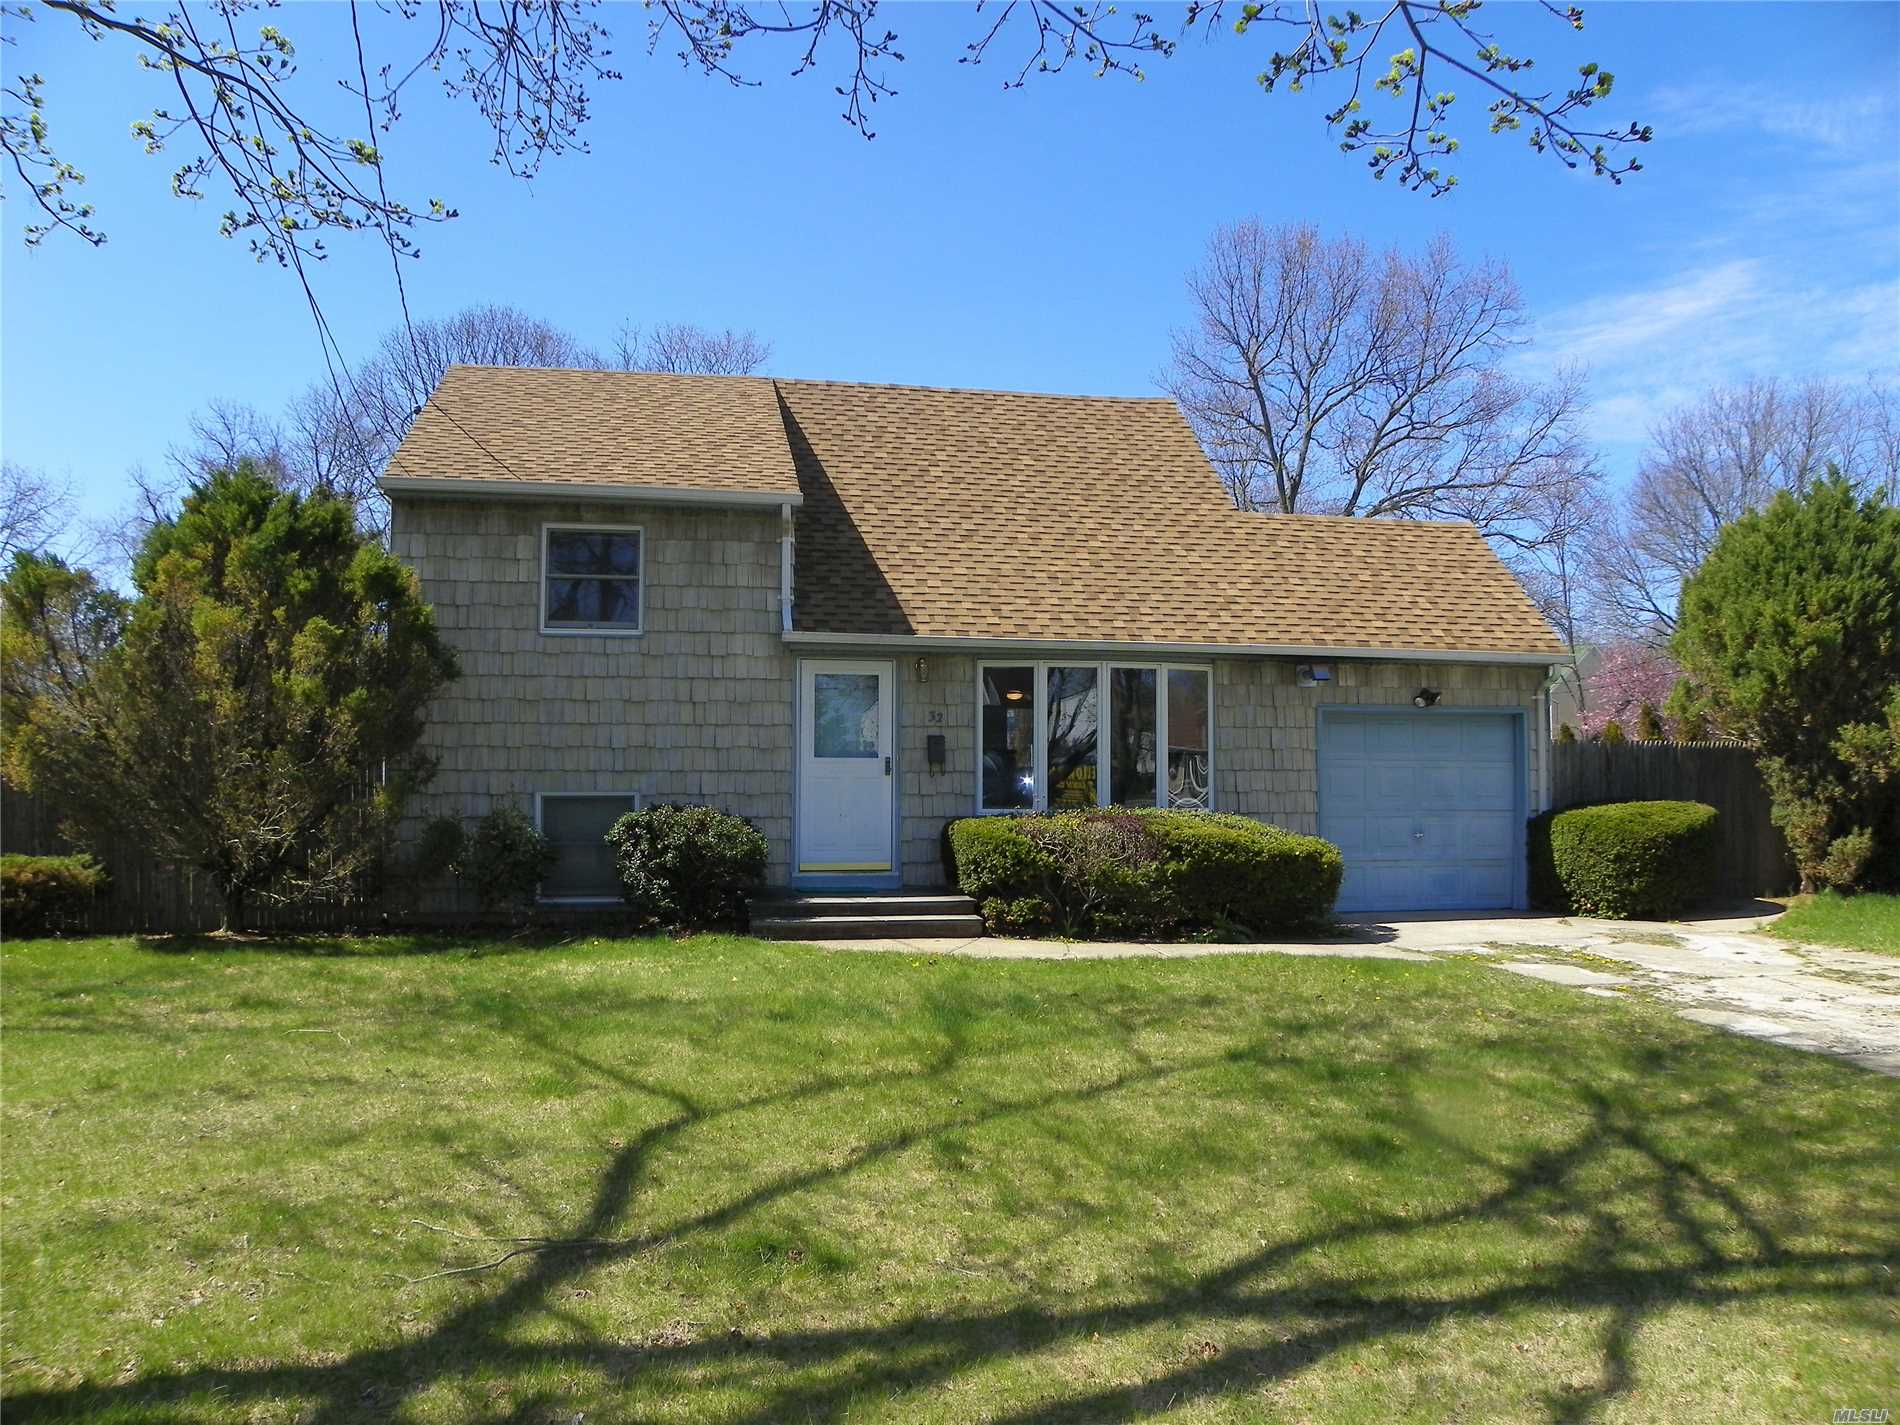 Adorable Split With Updated Kitchen Cabinets, 200 Amp Electric Service, Anderson Windows,  Efficient Pellet Stove, Hardwood Floors, Fenced In Rear Yard,  On A Corner Lot.